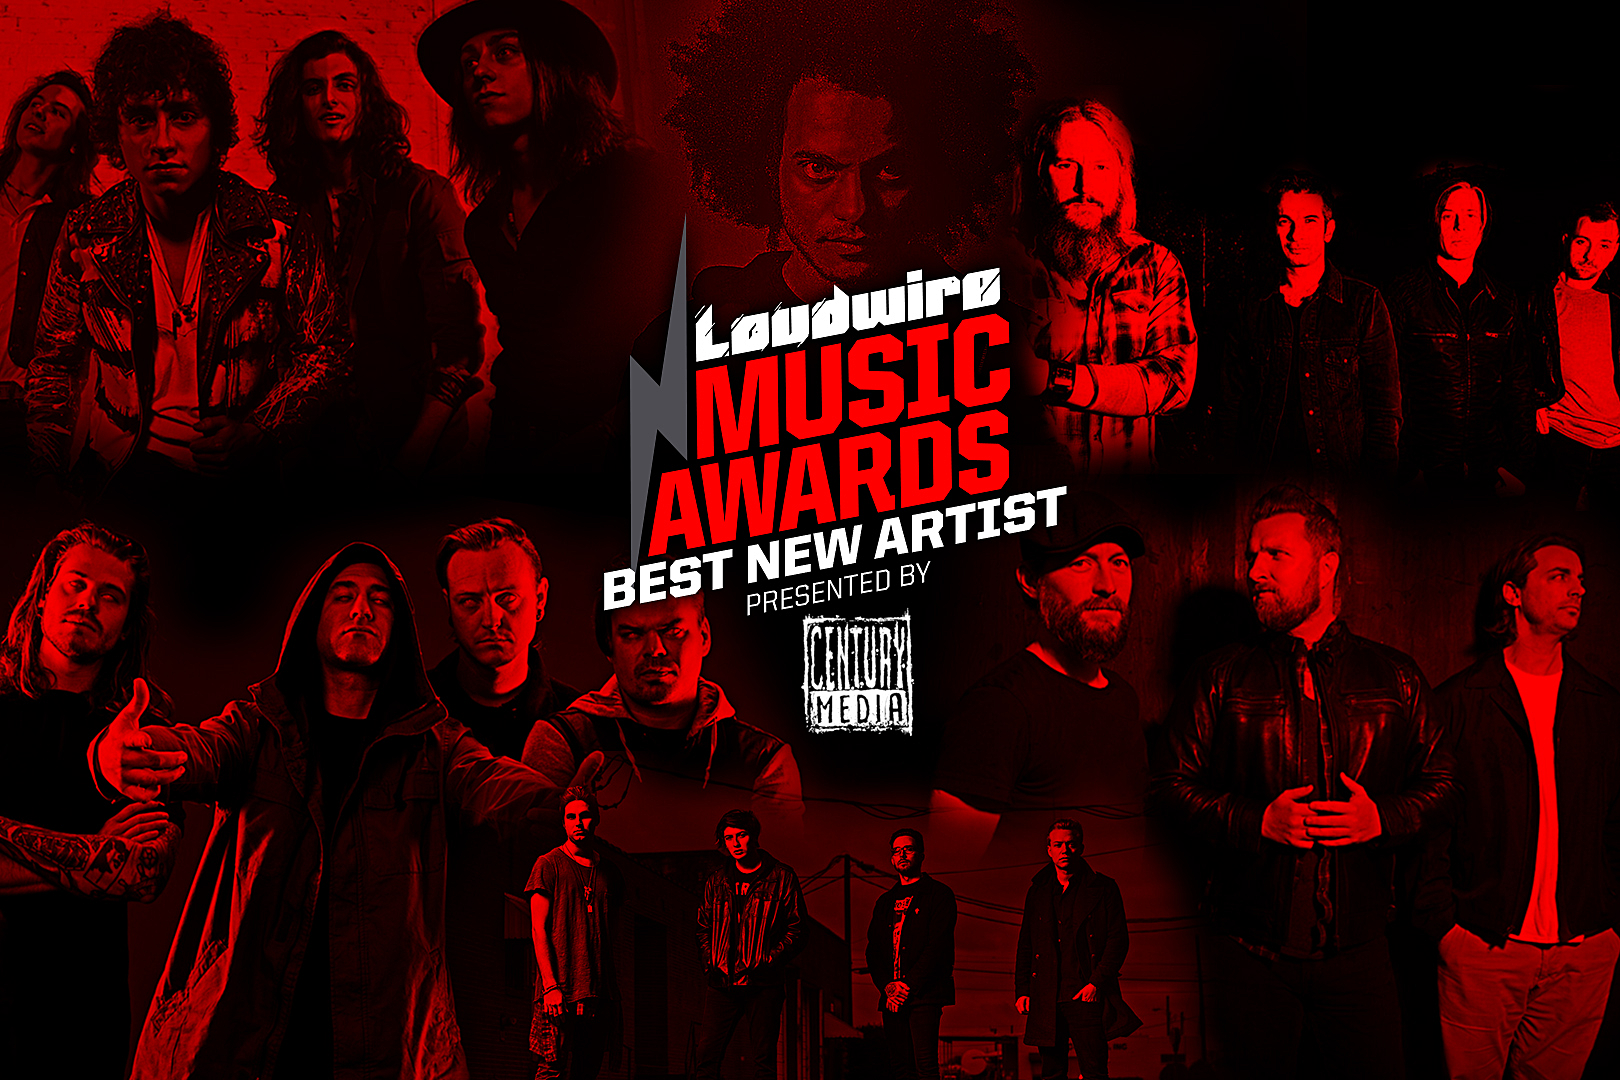 Vote for the Best New Artist – 2017 Loudwire Music Awards